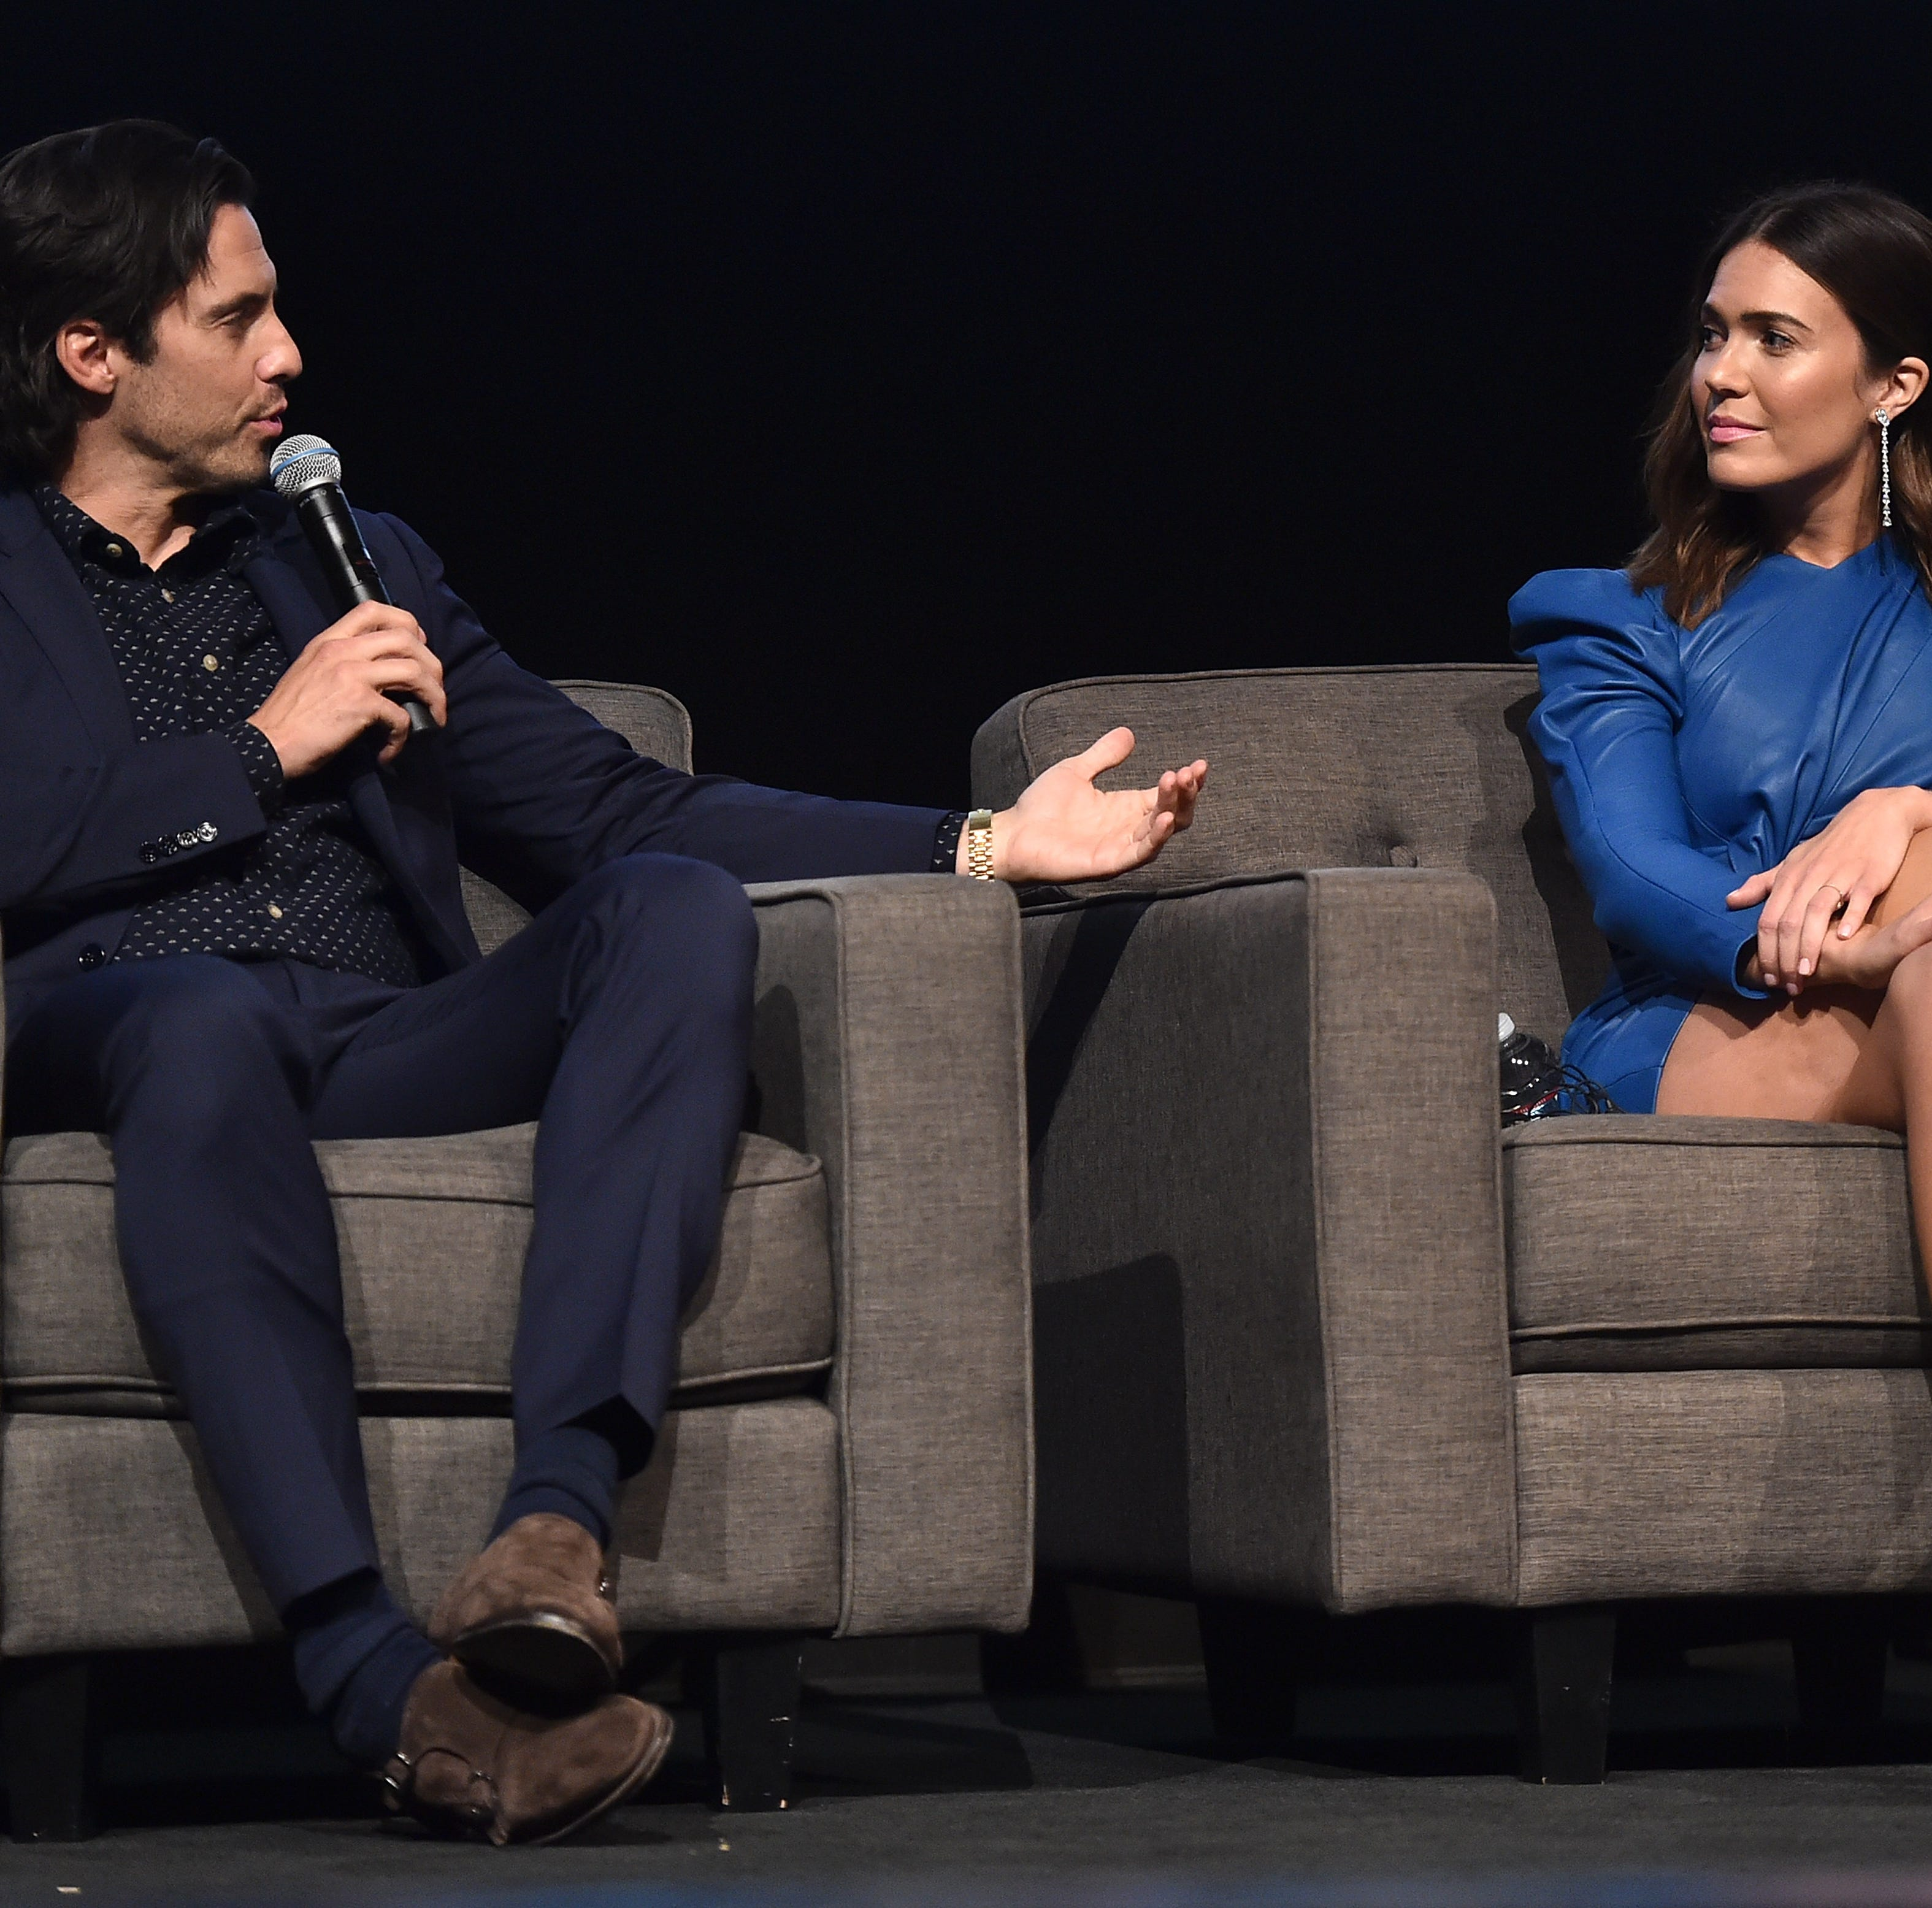 'This Is Us' stars Milo Ventimiglia, left, and Mandy Moore joined cast members and executive producer Dan Fogelman for a panel Monday that looked back at last season and dropped hints about Season 3, which premieres Sept. 25 on NBC.